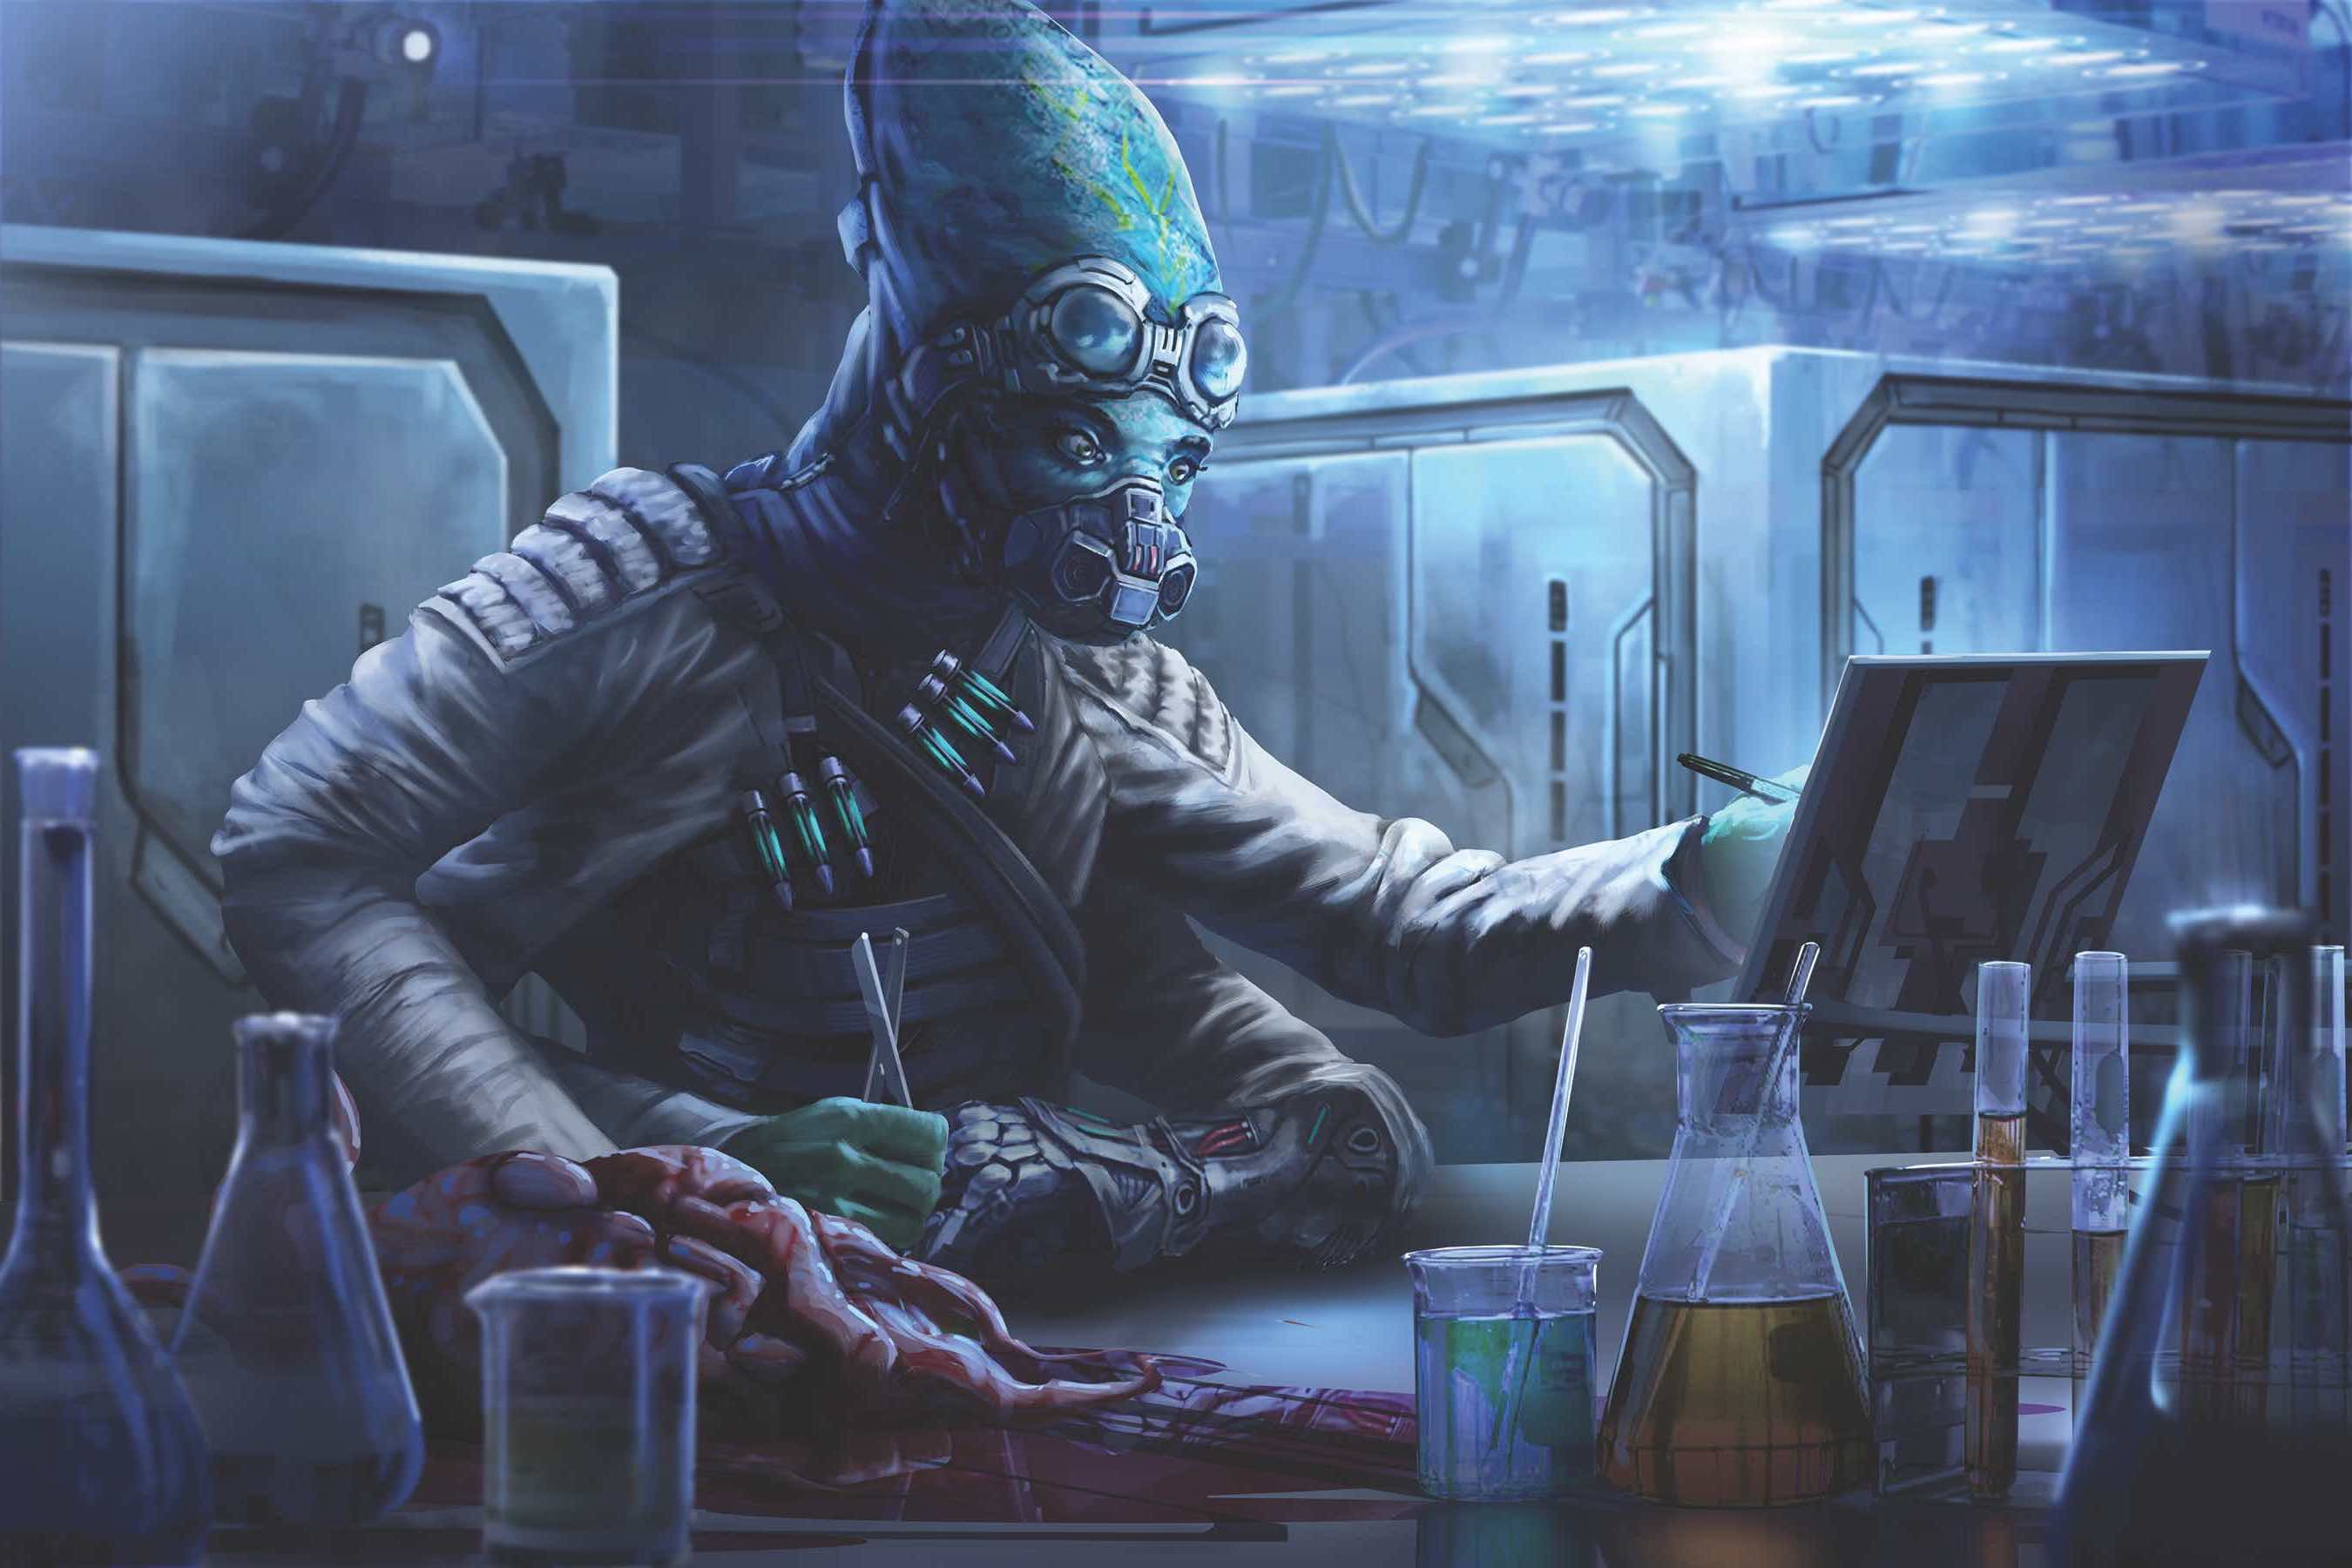 Barsala, the iconic kasatha biohacker, jots down notes on a tablet with one hand while the other holds a pair of surgical scissors near a bloody mass of tentacles sitting atop her lab table.